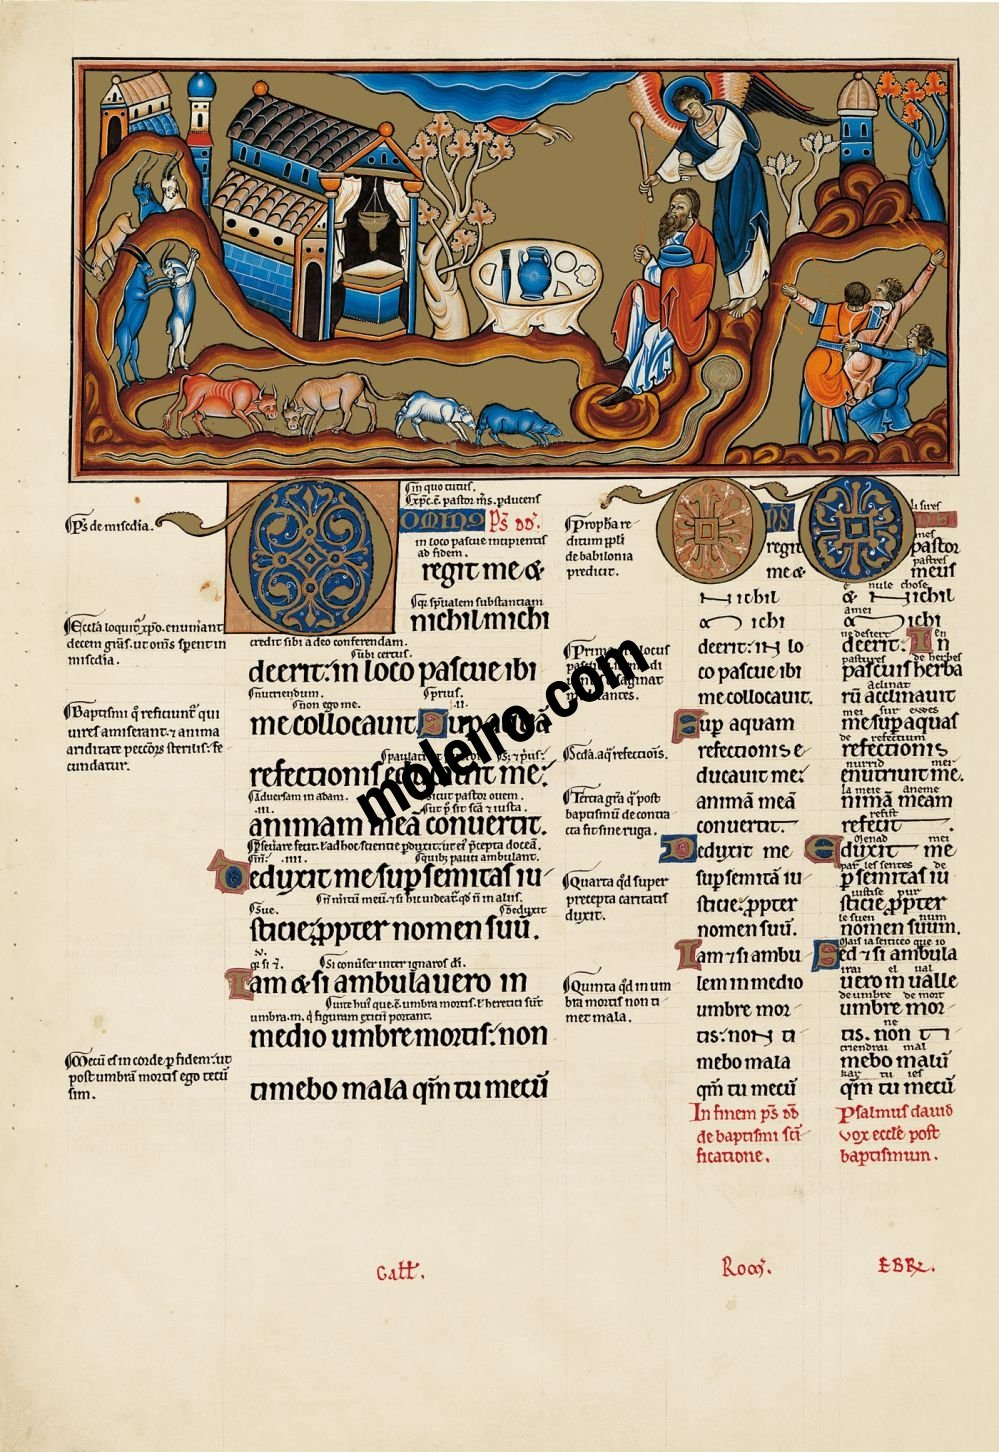 The Great Canterbury Psalter f. 39v, psalm 22, The Lord rules me and I shall want nothing